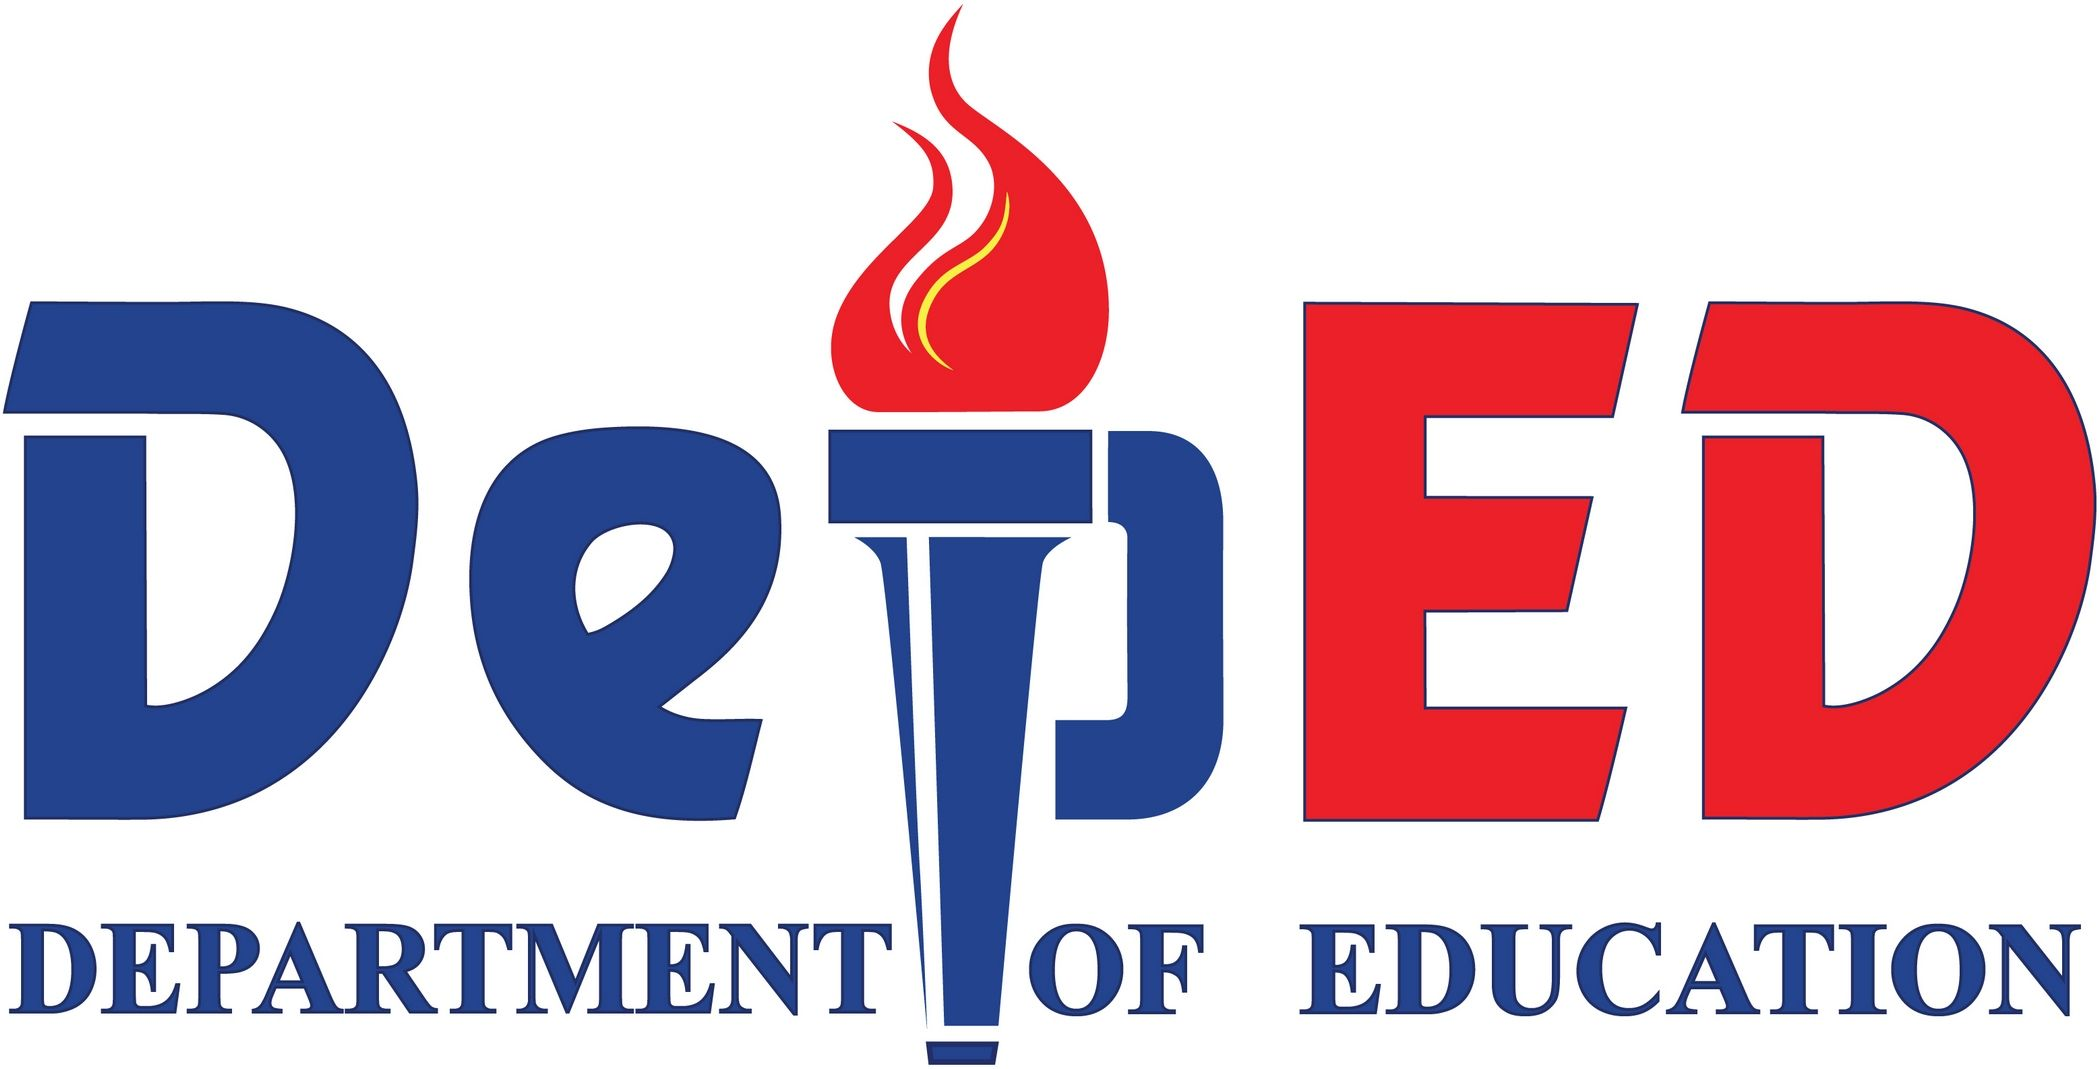 DepEd Logo [Department of Education Philippines